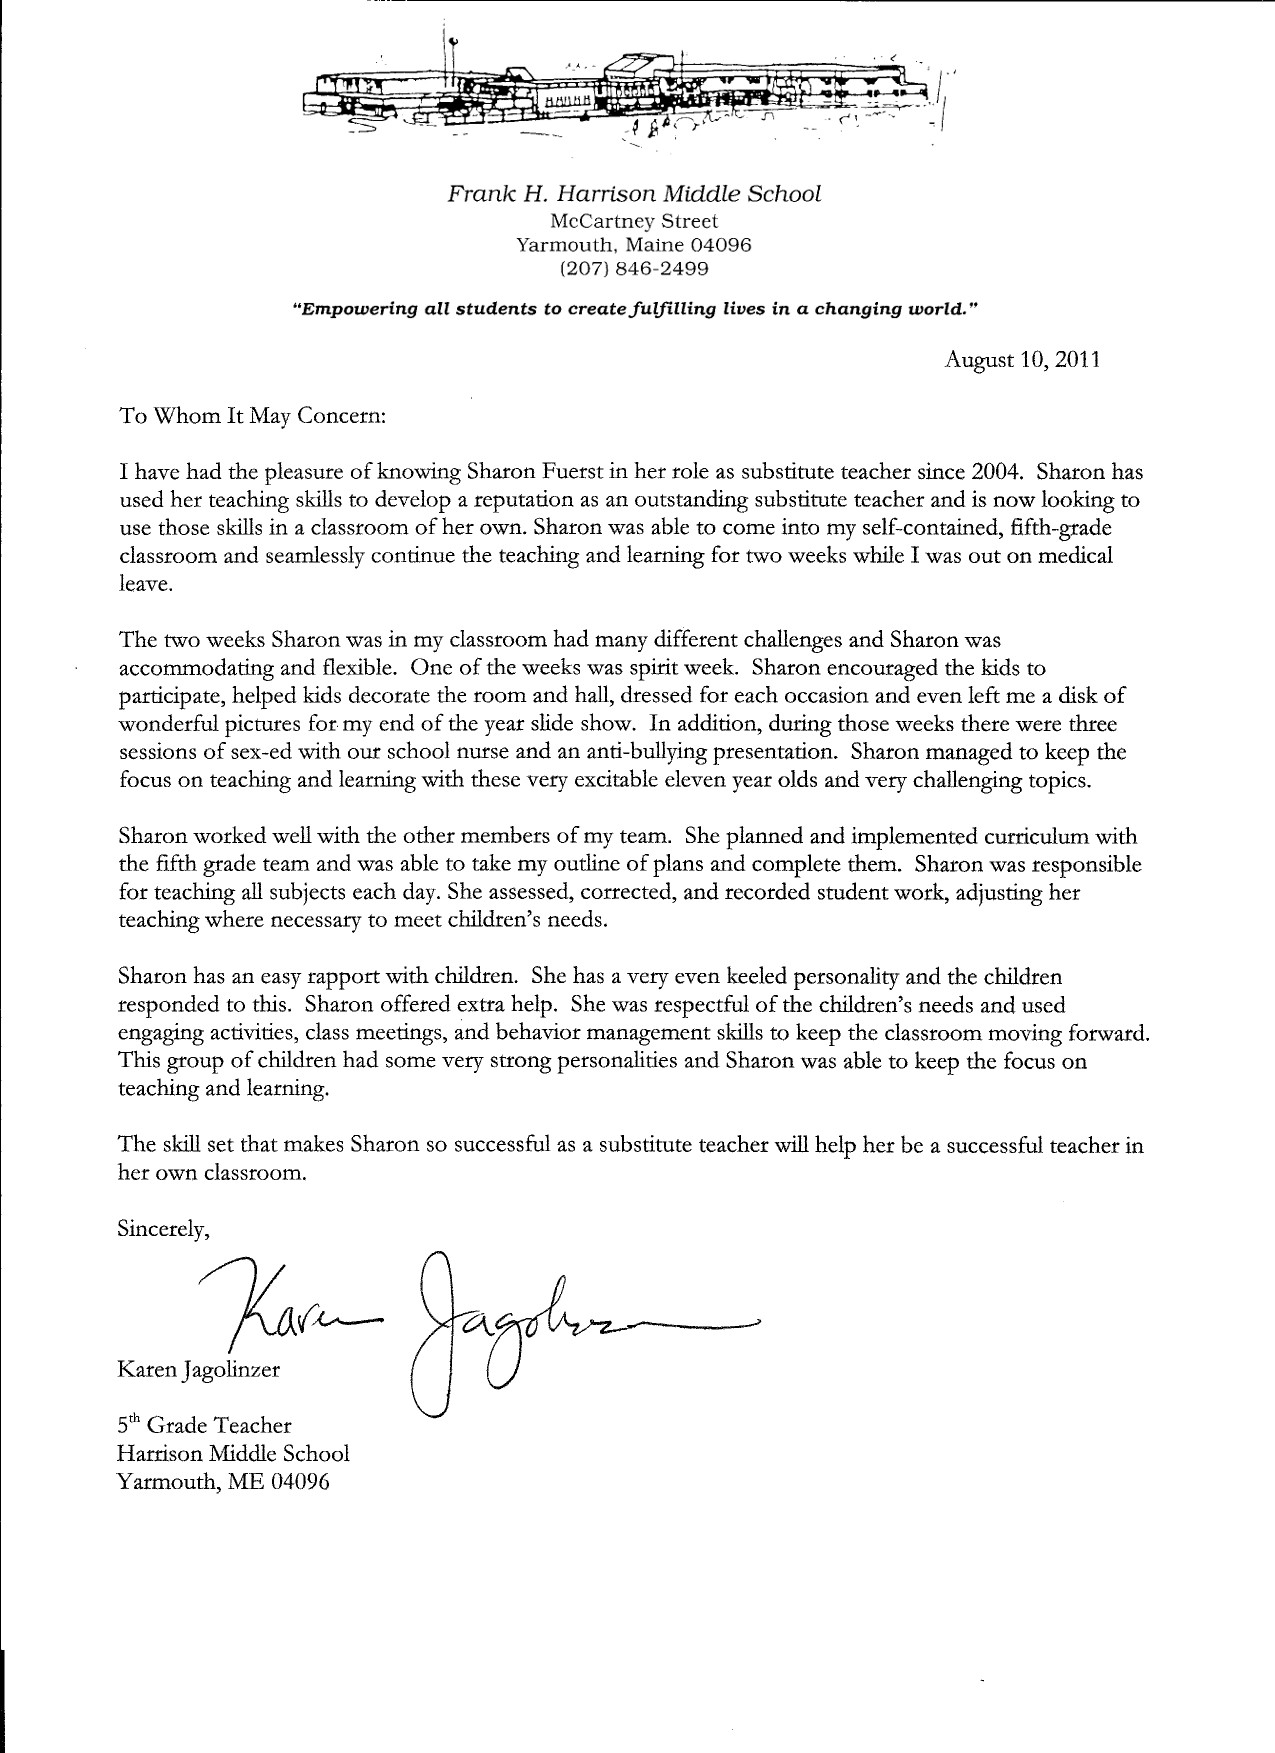 Letter Of Recommendation For A Teacher Letter Of Recommendation From